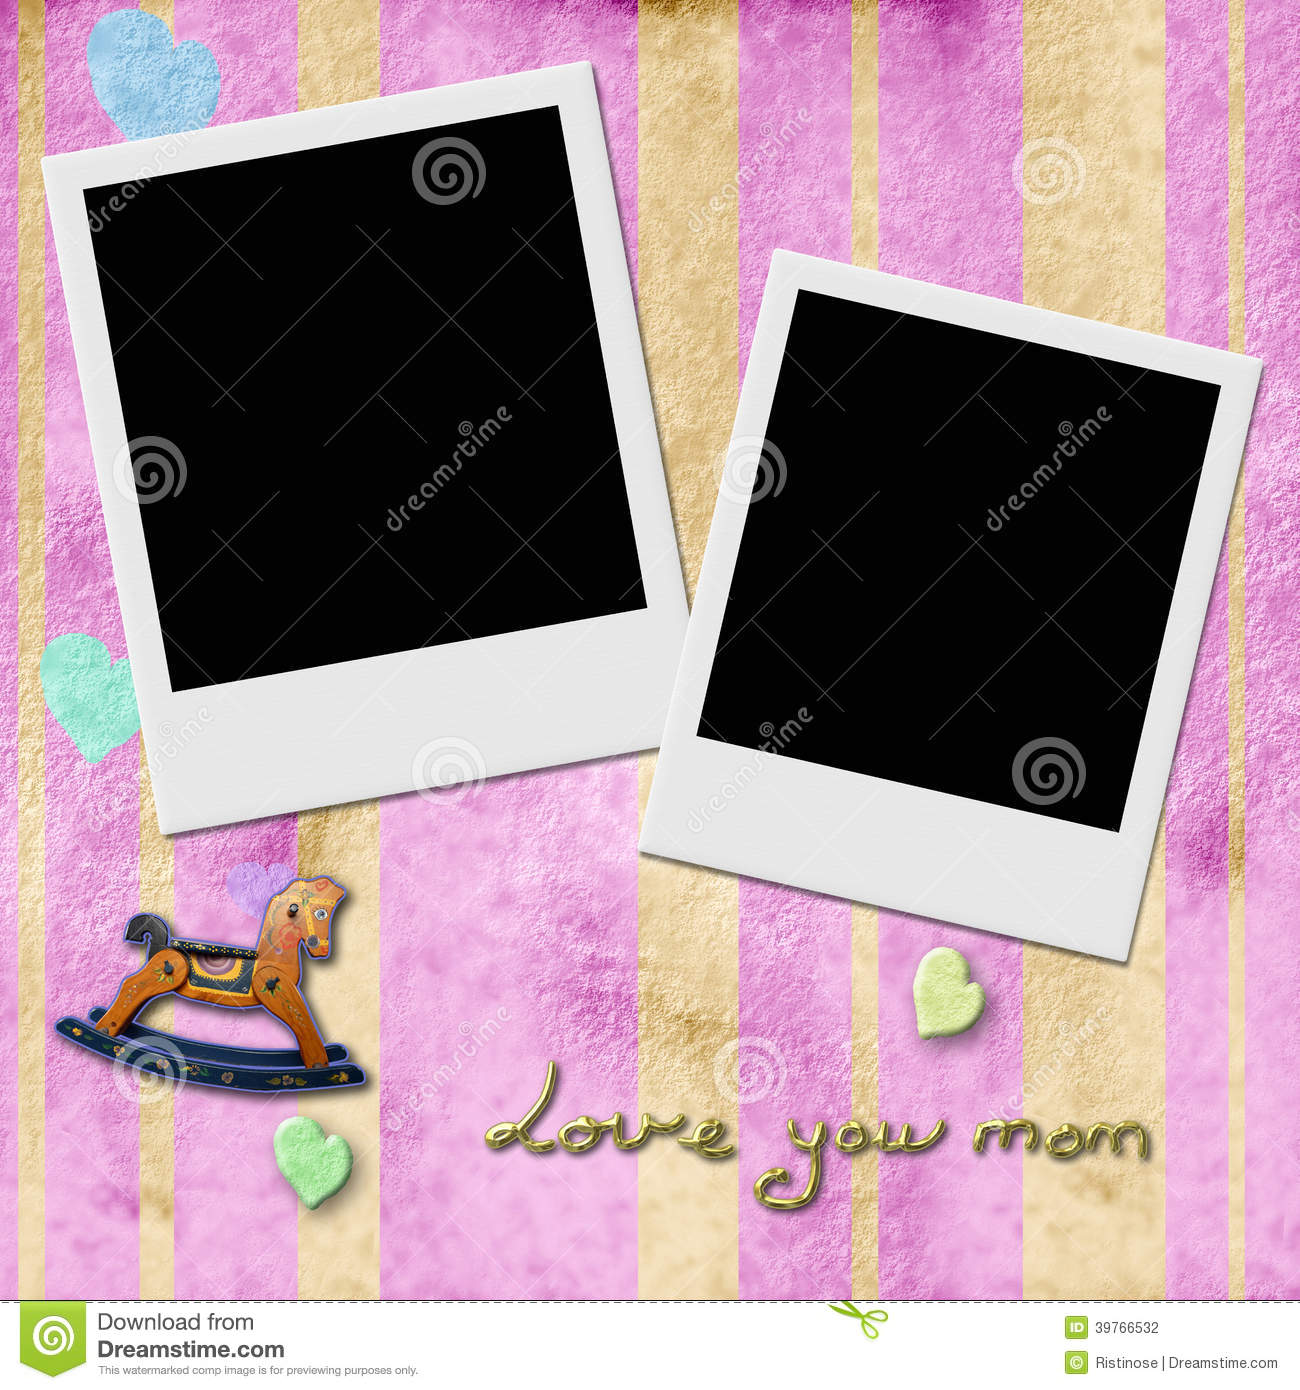 Love You Mom Two Instant Photo Frames In Pink Stock Illustration